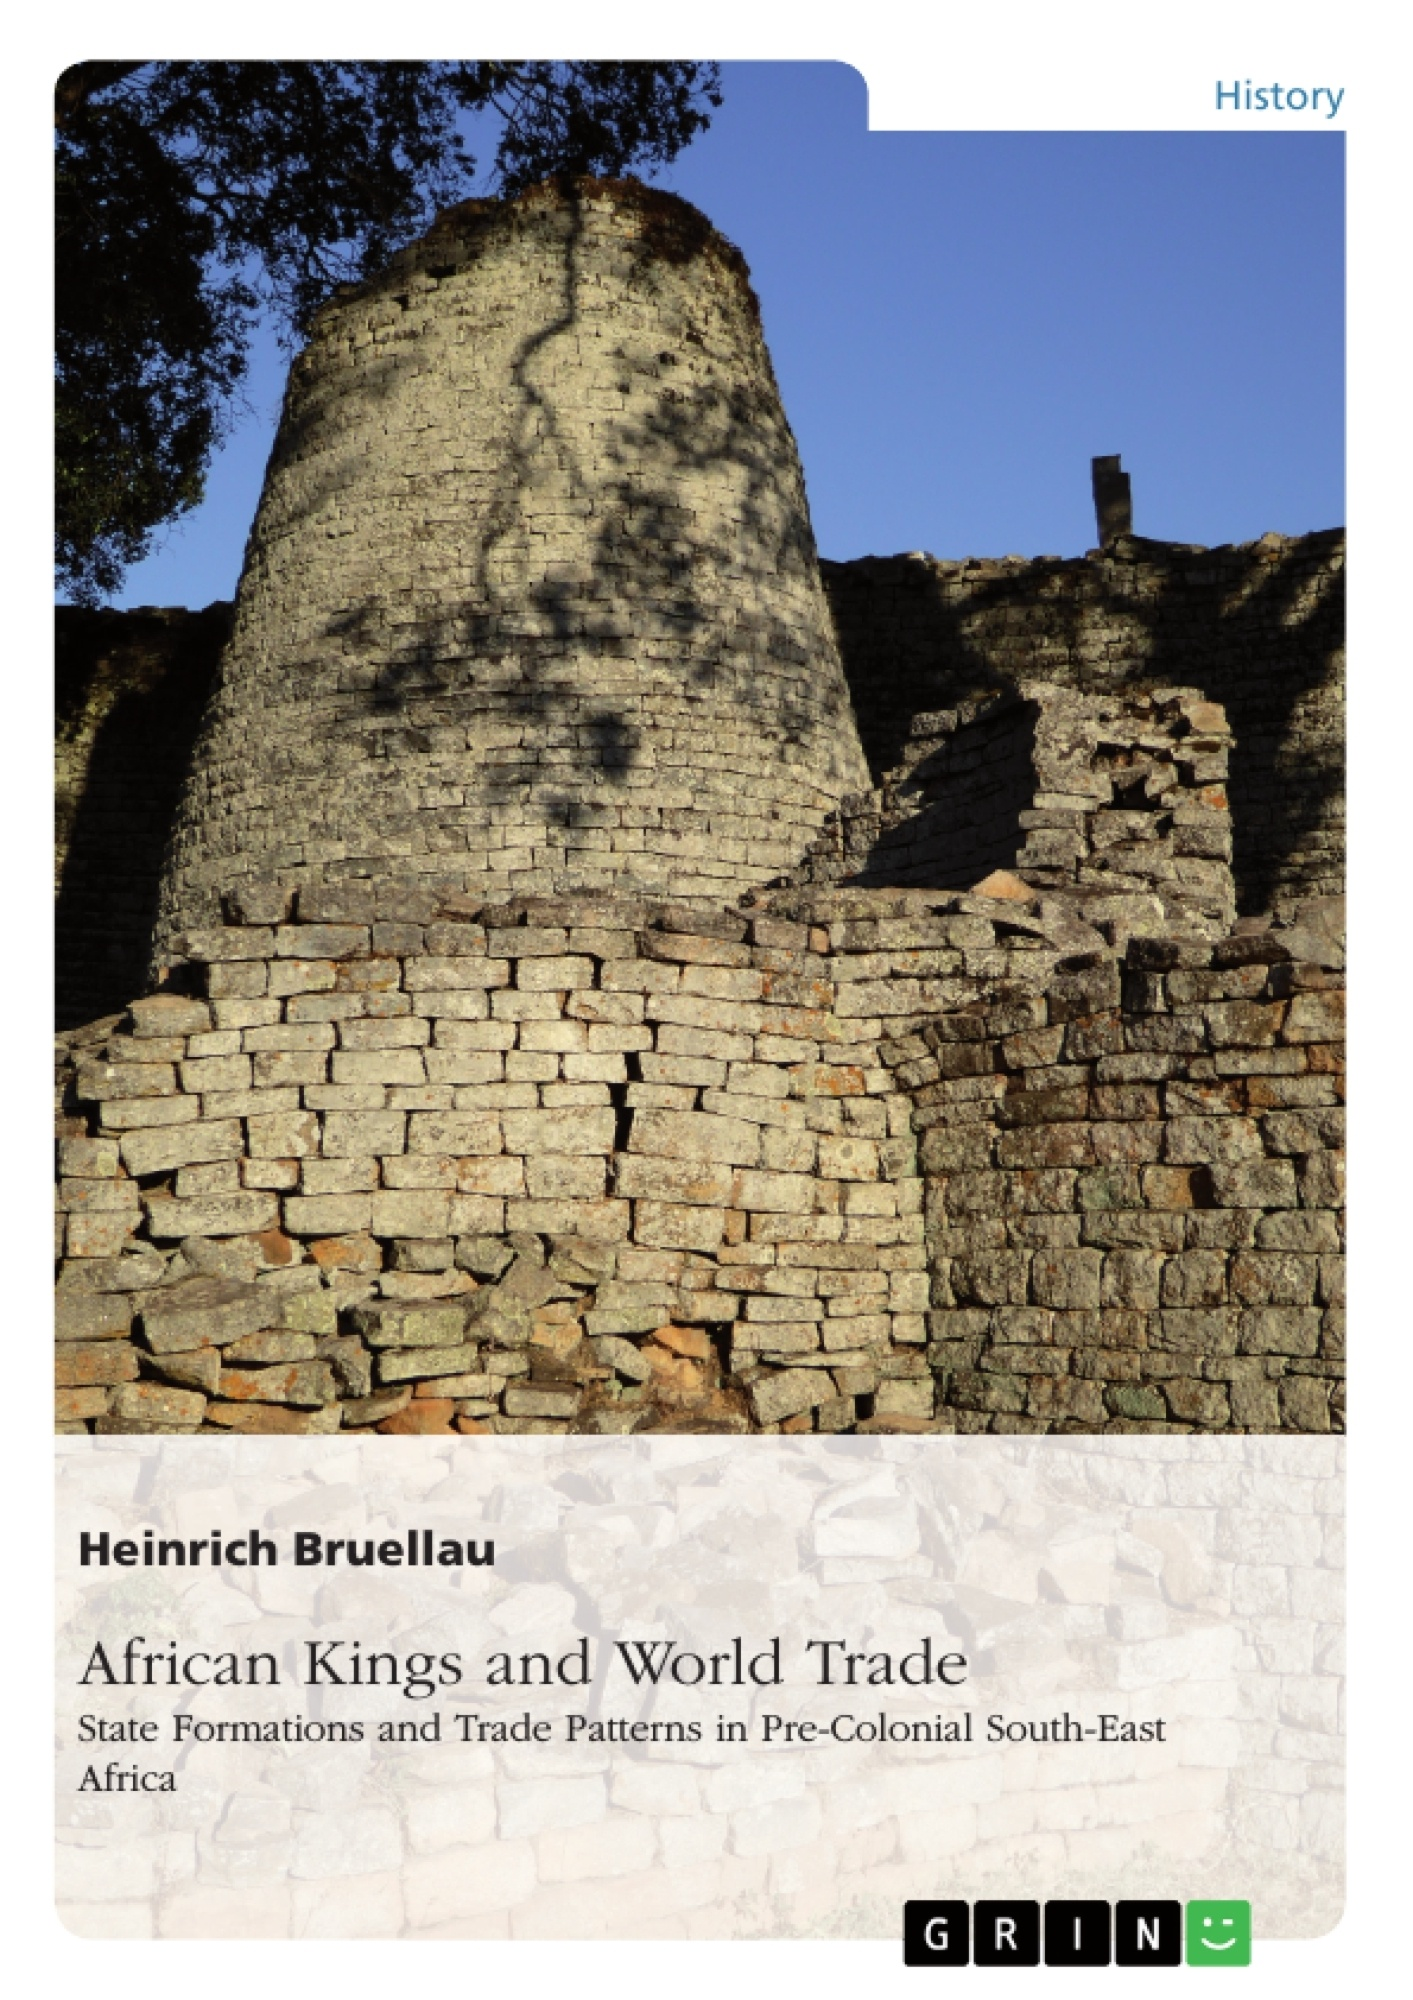 Title: African Kings and World Trade. State Formations and Trade Patterns in pre-colonial South-East Africa